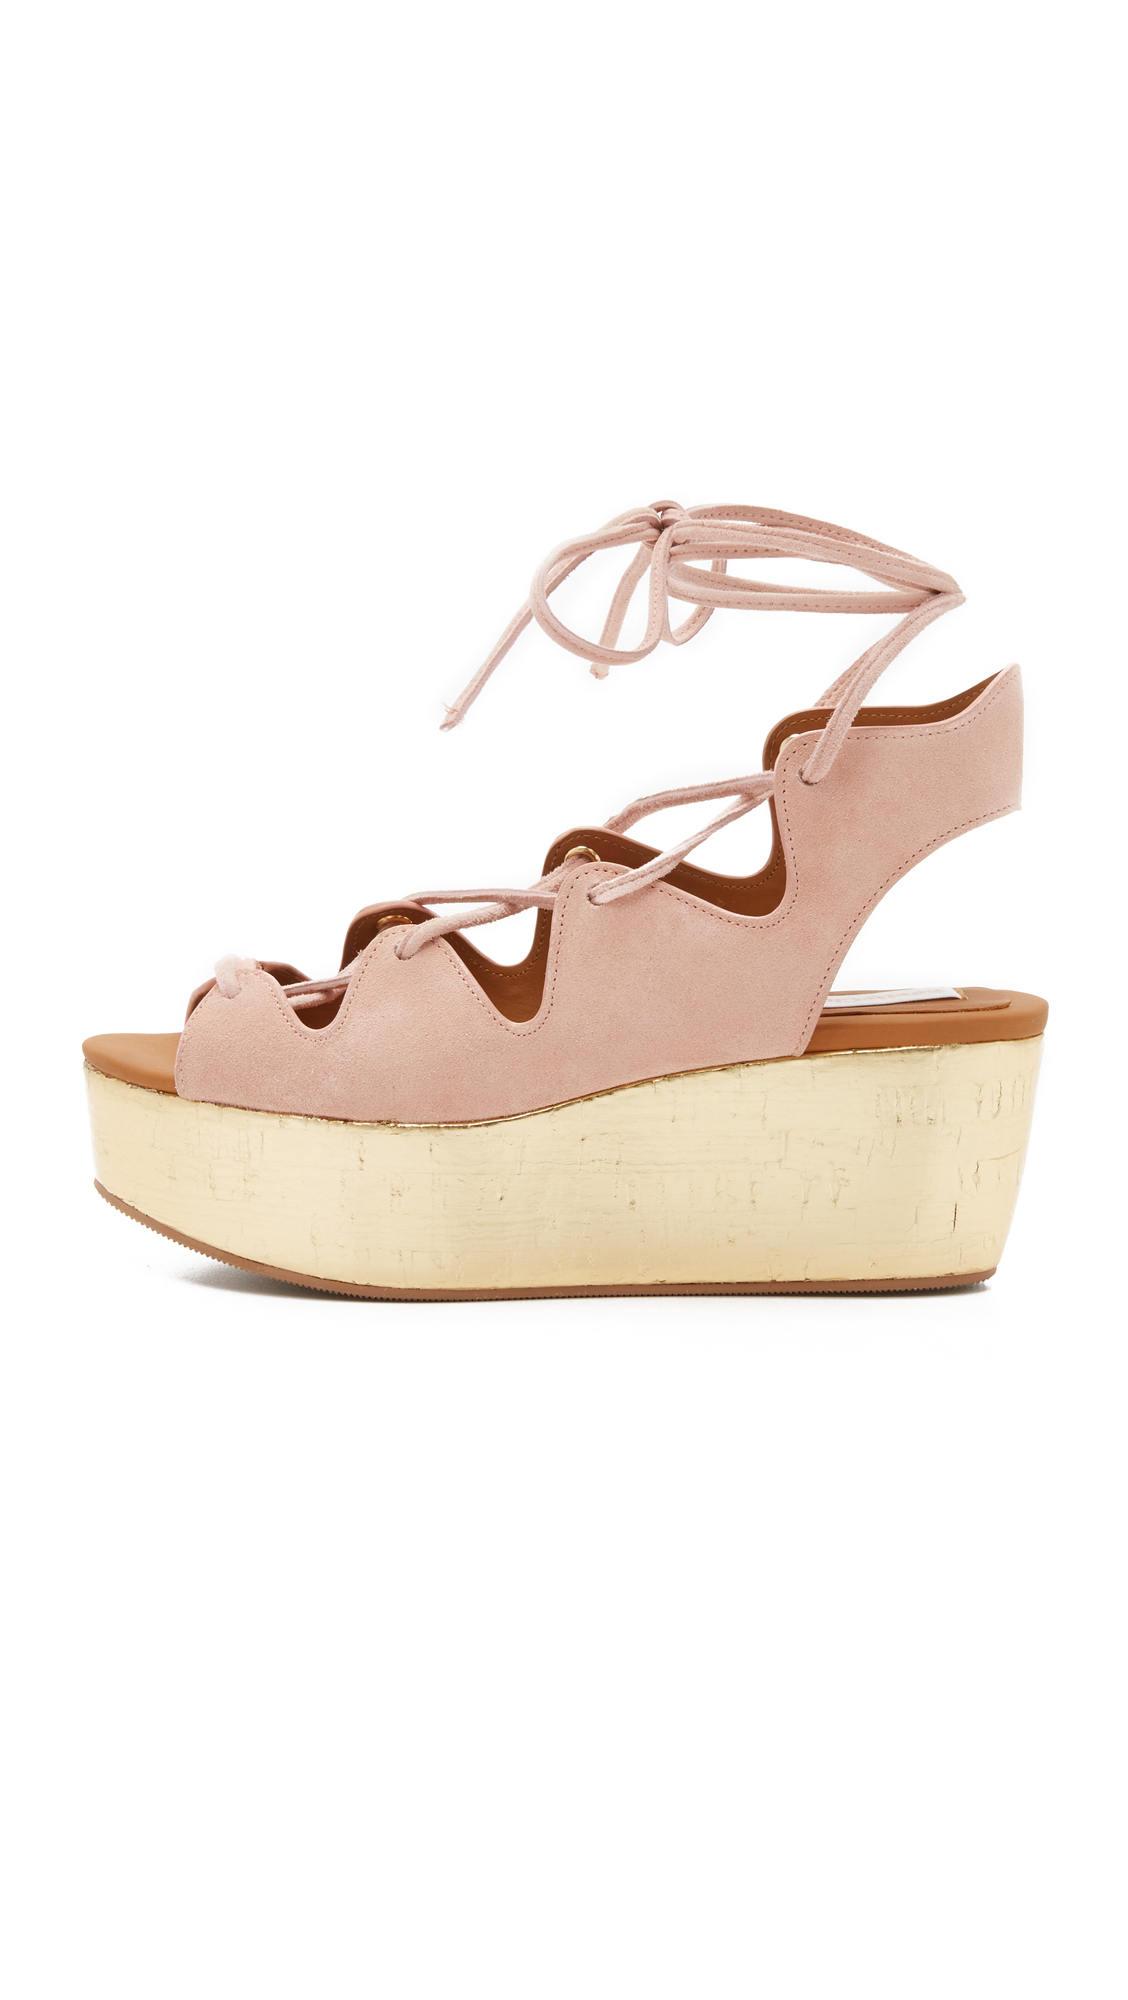 c344025e86d Lyst - See By Chloé Liana Platform Lace Up Sandals in Natural